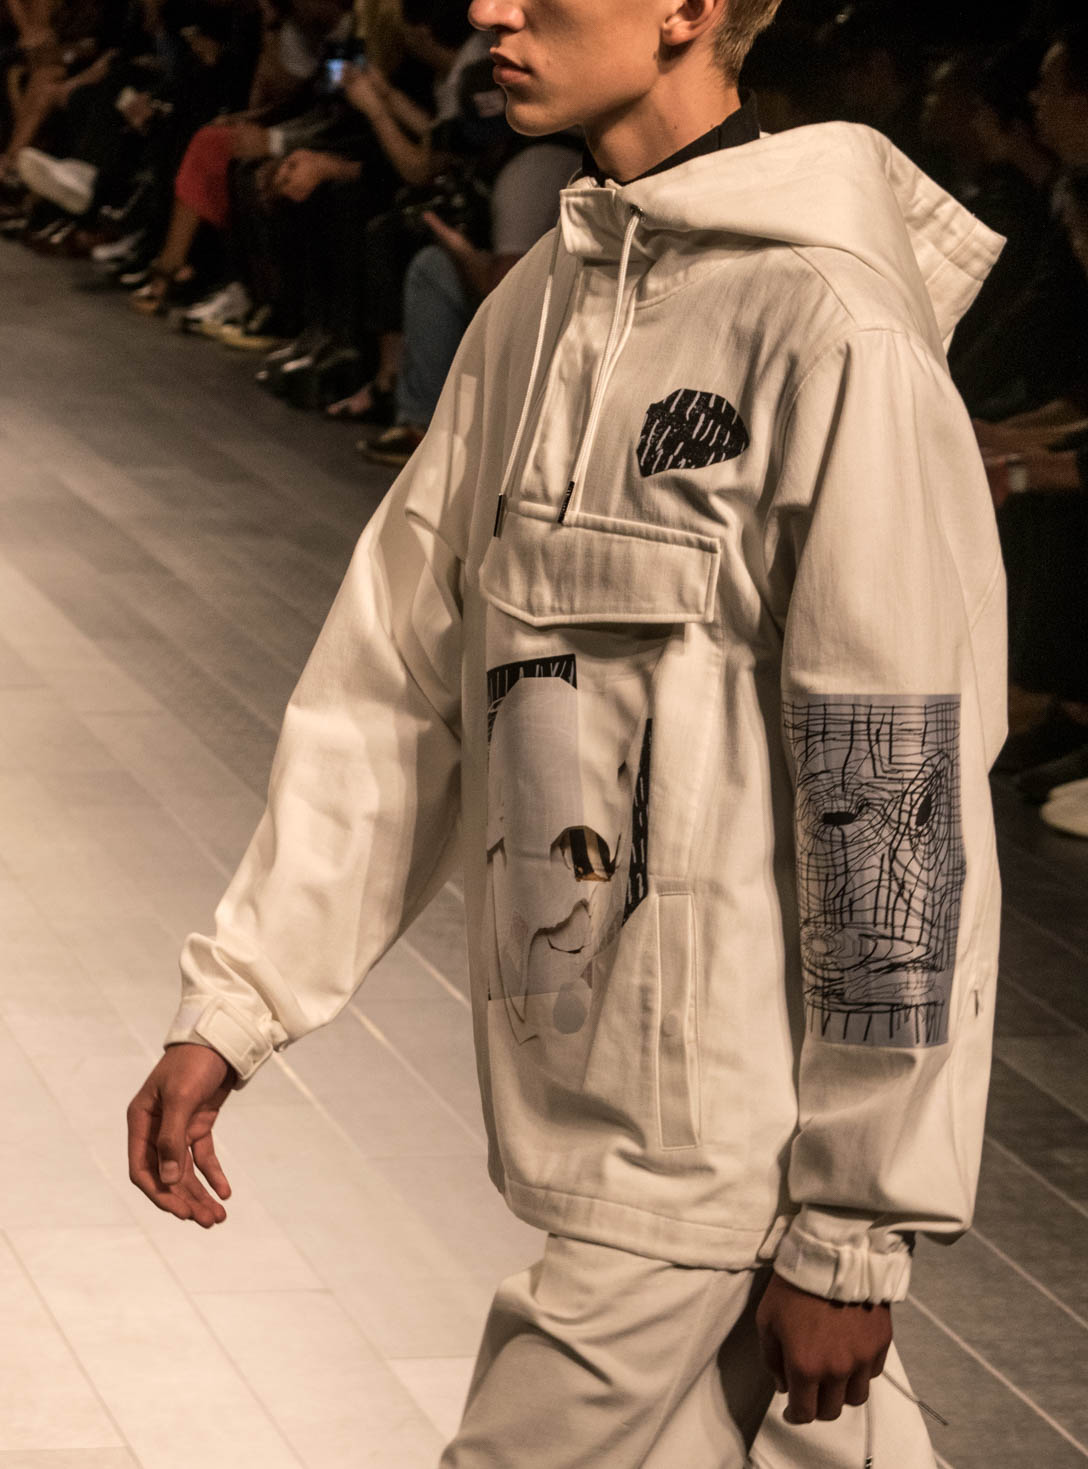 29 Rochambeau SS18 Runway Show - New York Fashion Week 2017 - FilterGrade Blog